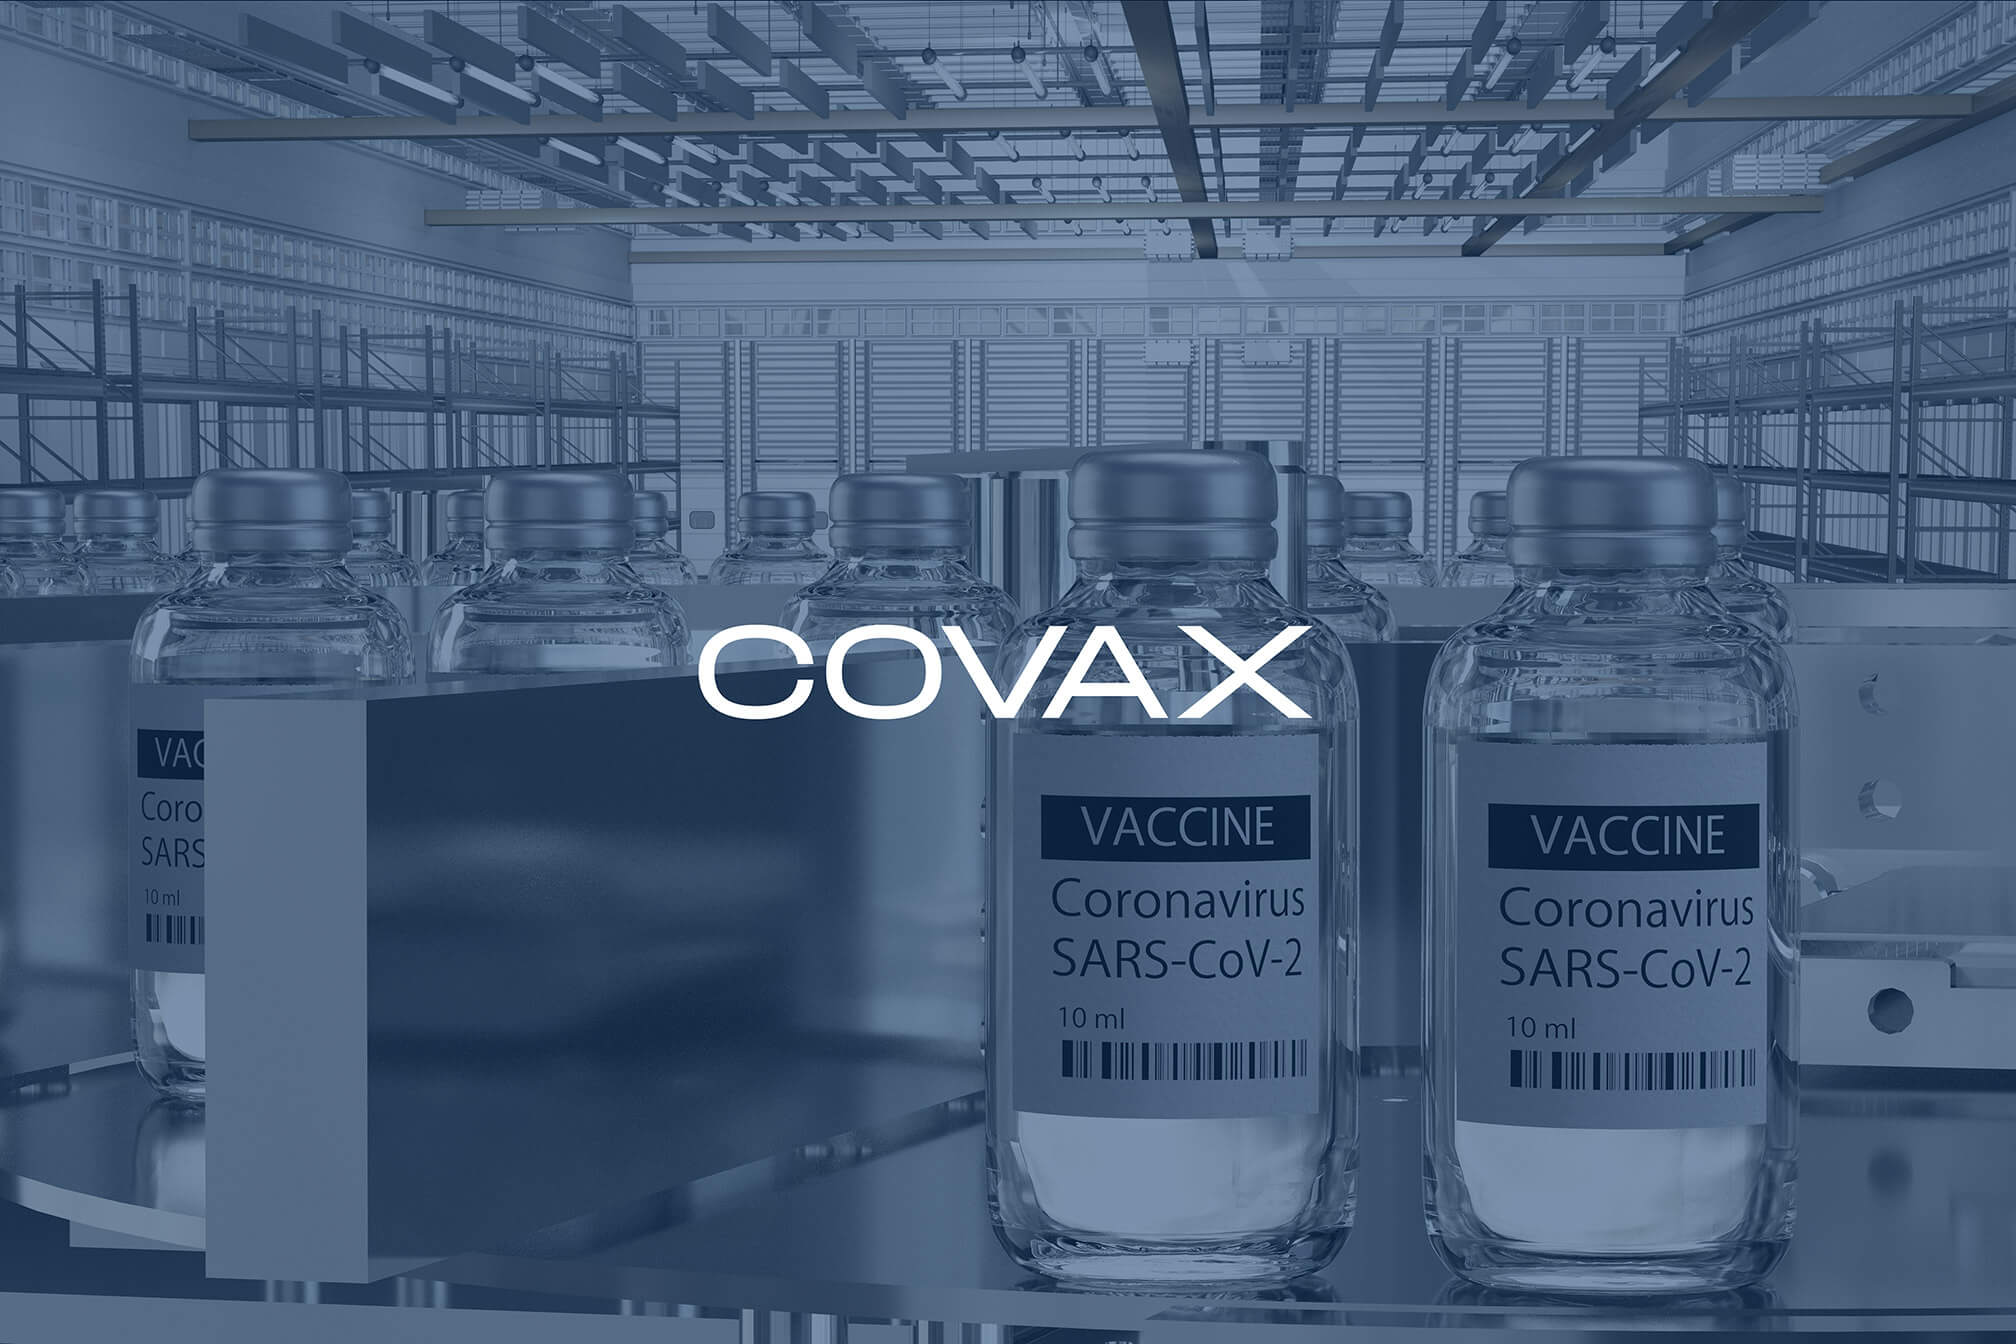 Serum Institute of India To Prioritize Getting Vaccines to COVAX